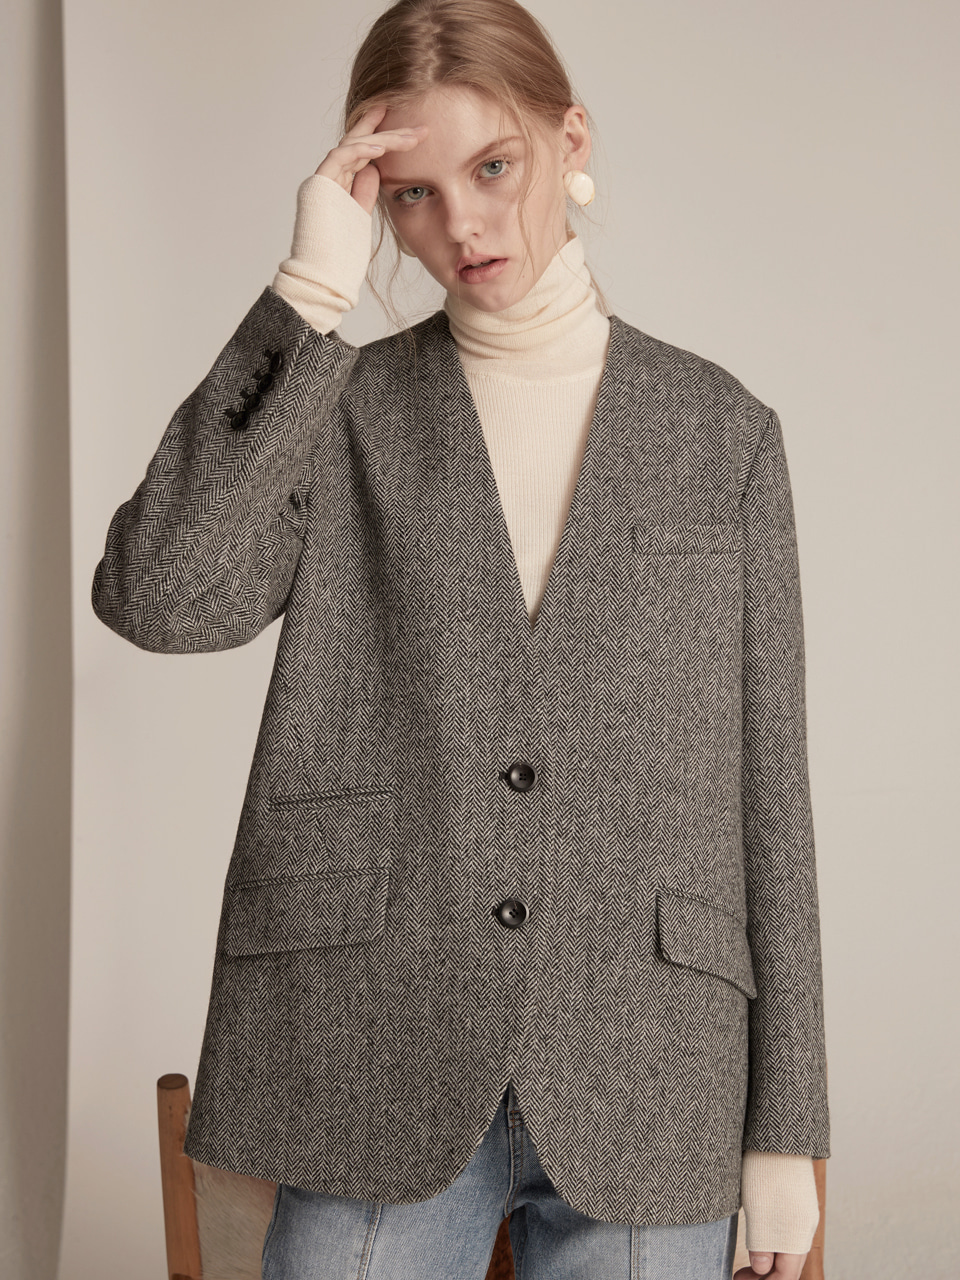 Herringbone Wool Jacket - Middle Grey